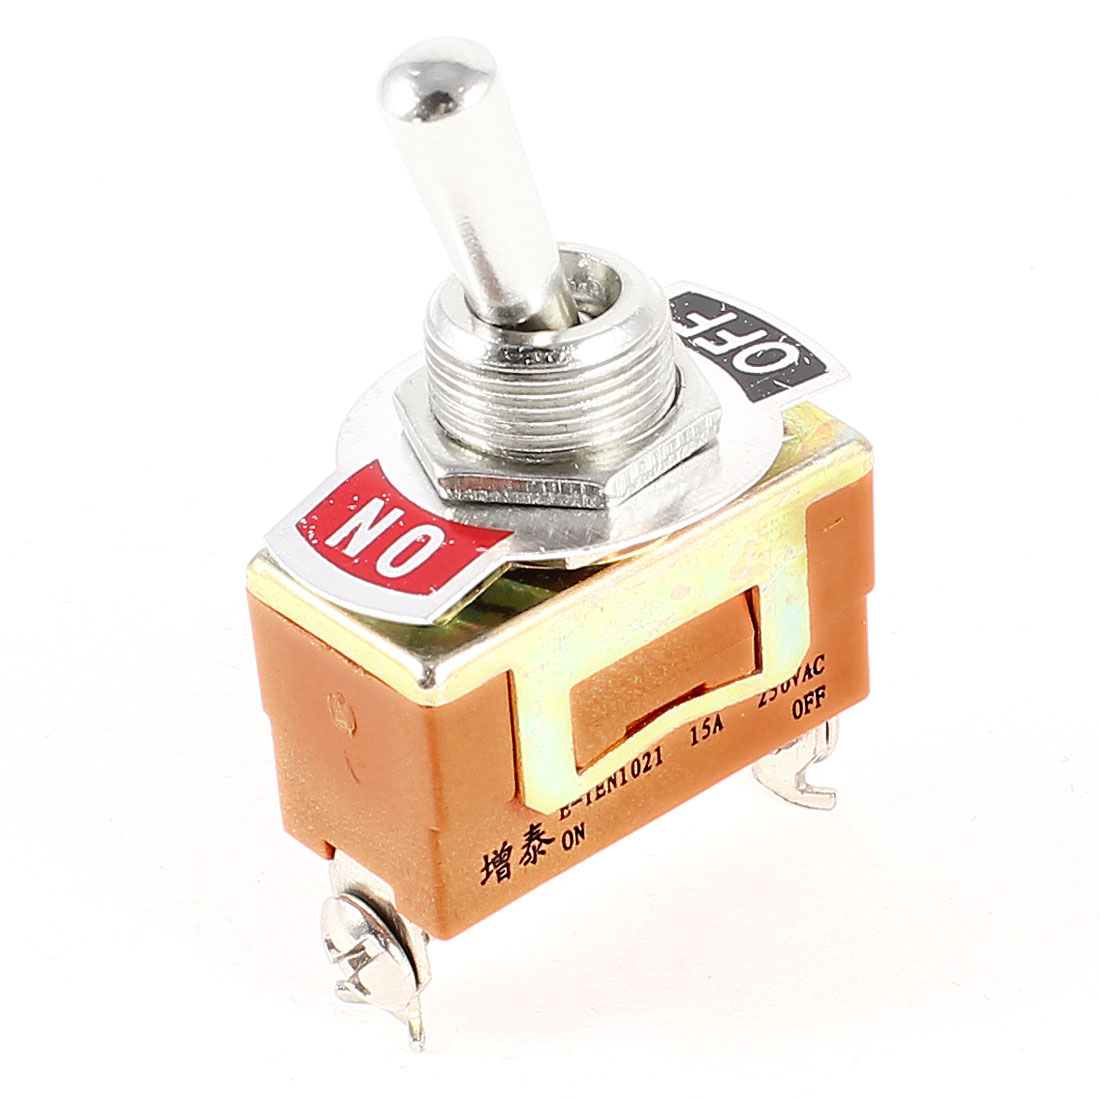 AC 250V 15A ON-OFF SPST 2 Position 2 Terminals Toggle Switch E-TEN1021